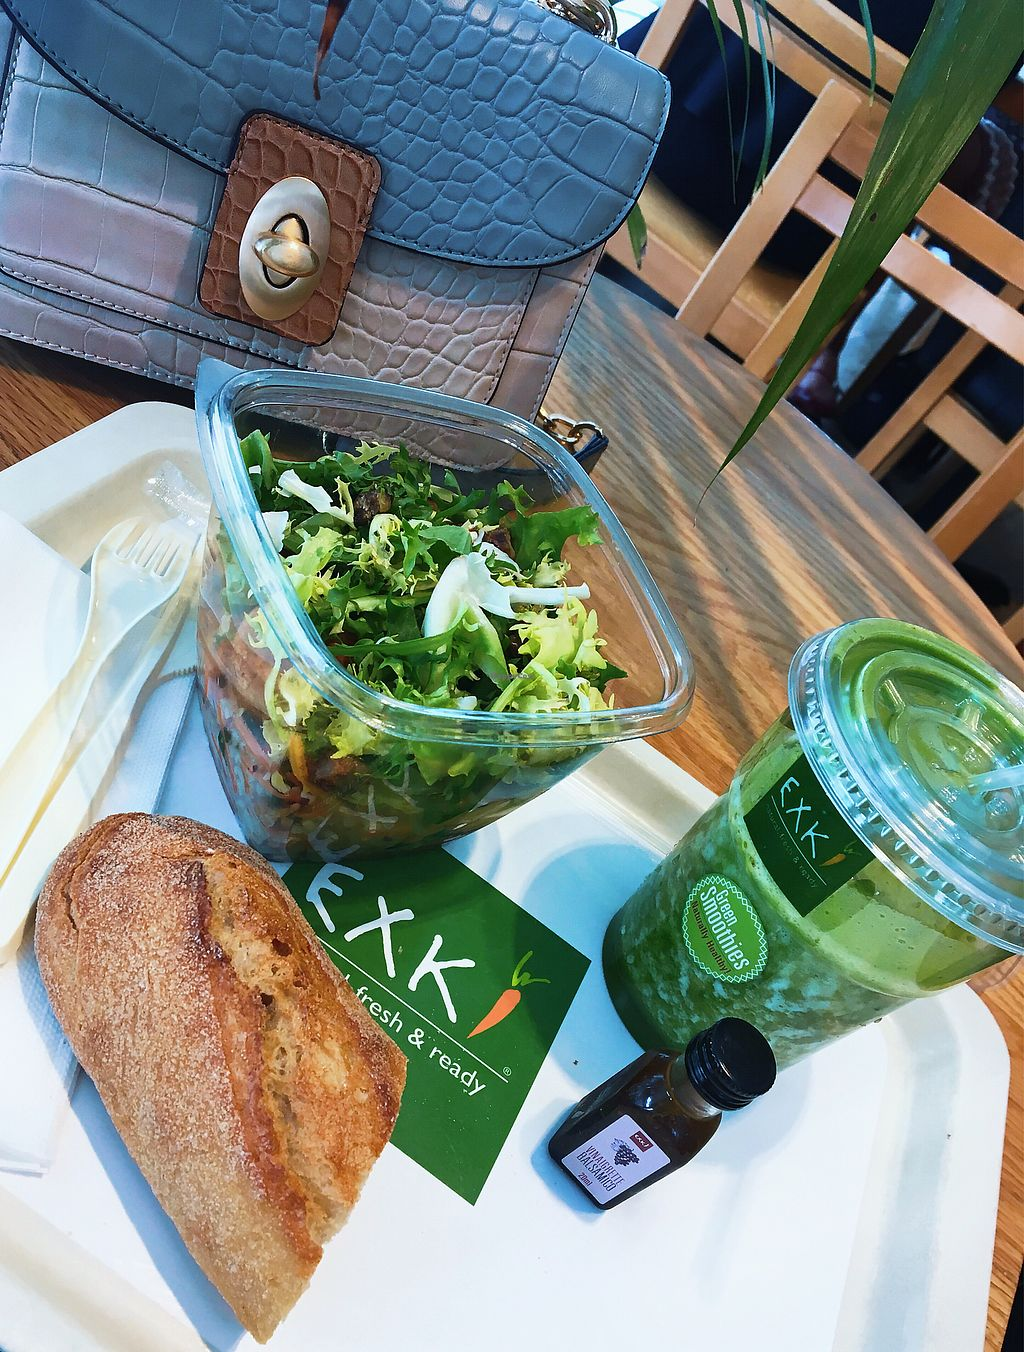 """Photo of Exki - Place De Brouckere  by <a href=""""/members/profile/tcsengusz"""">tcsengusz</a> <br/>Yummy salad w/ a green smoothie <br/> September 12, 2017  - <a href='/contact/abuse/image/50823/303716'>Report</a>"""